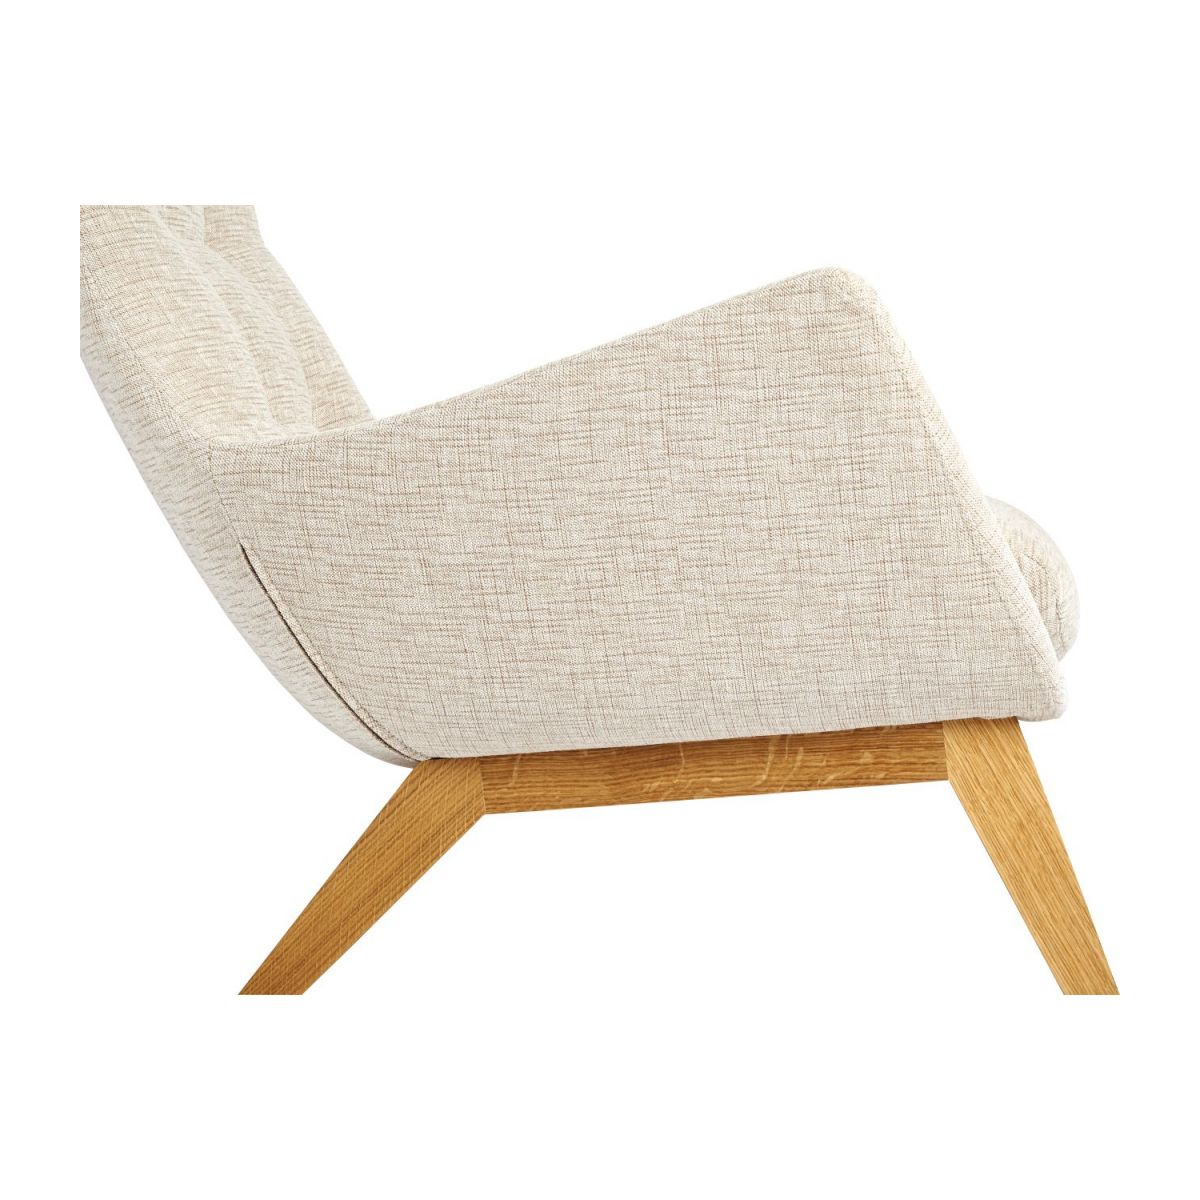 Armchair in Ancio fabric, nature with oak legs n°7